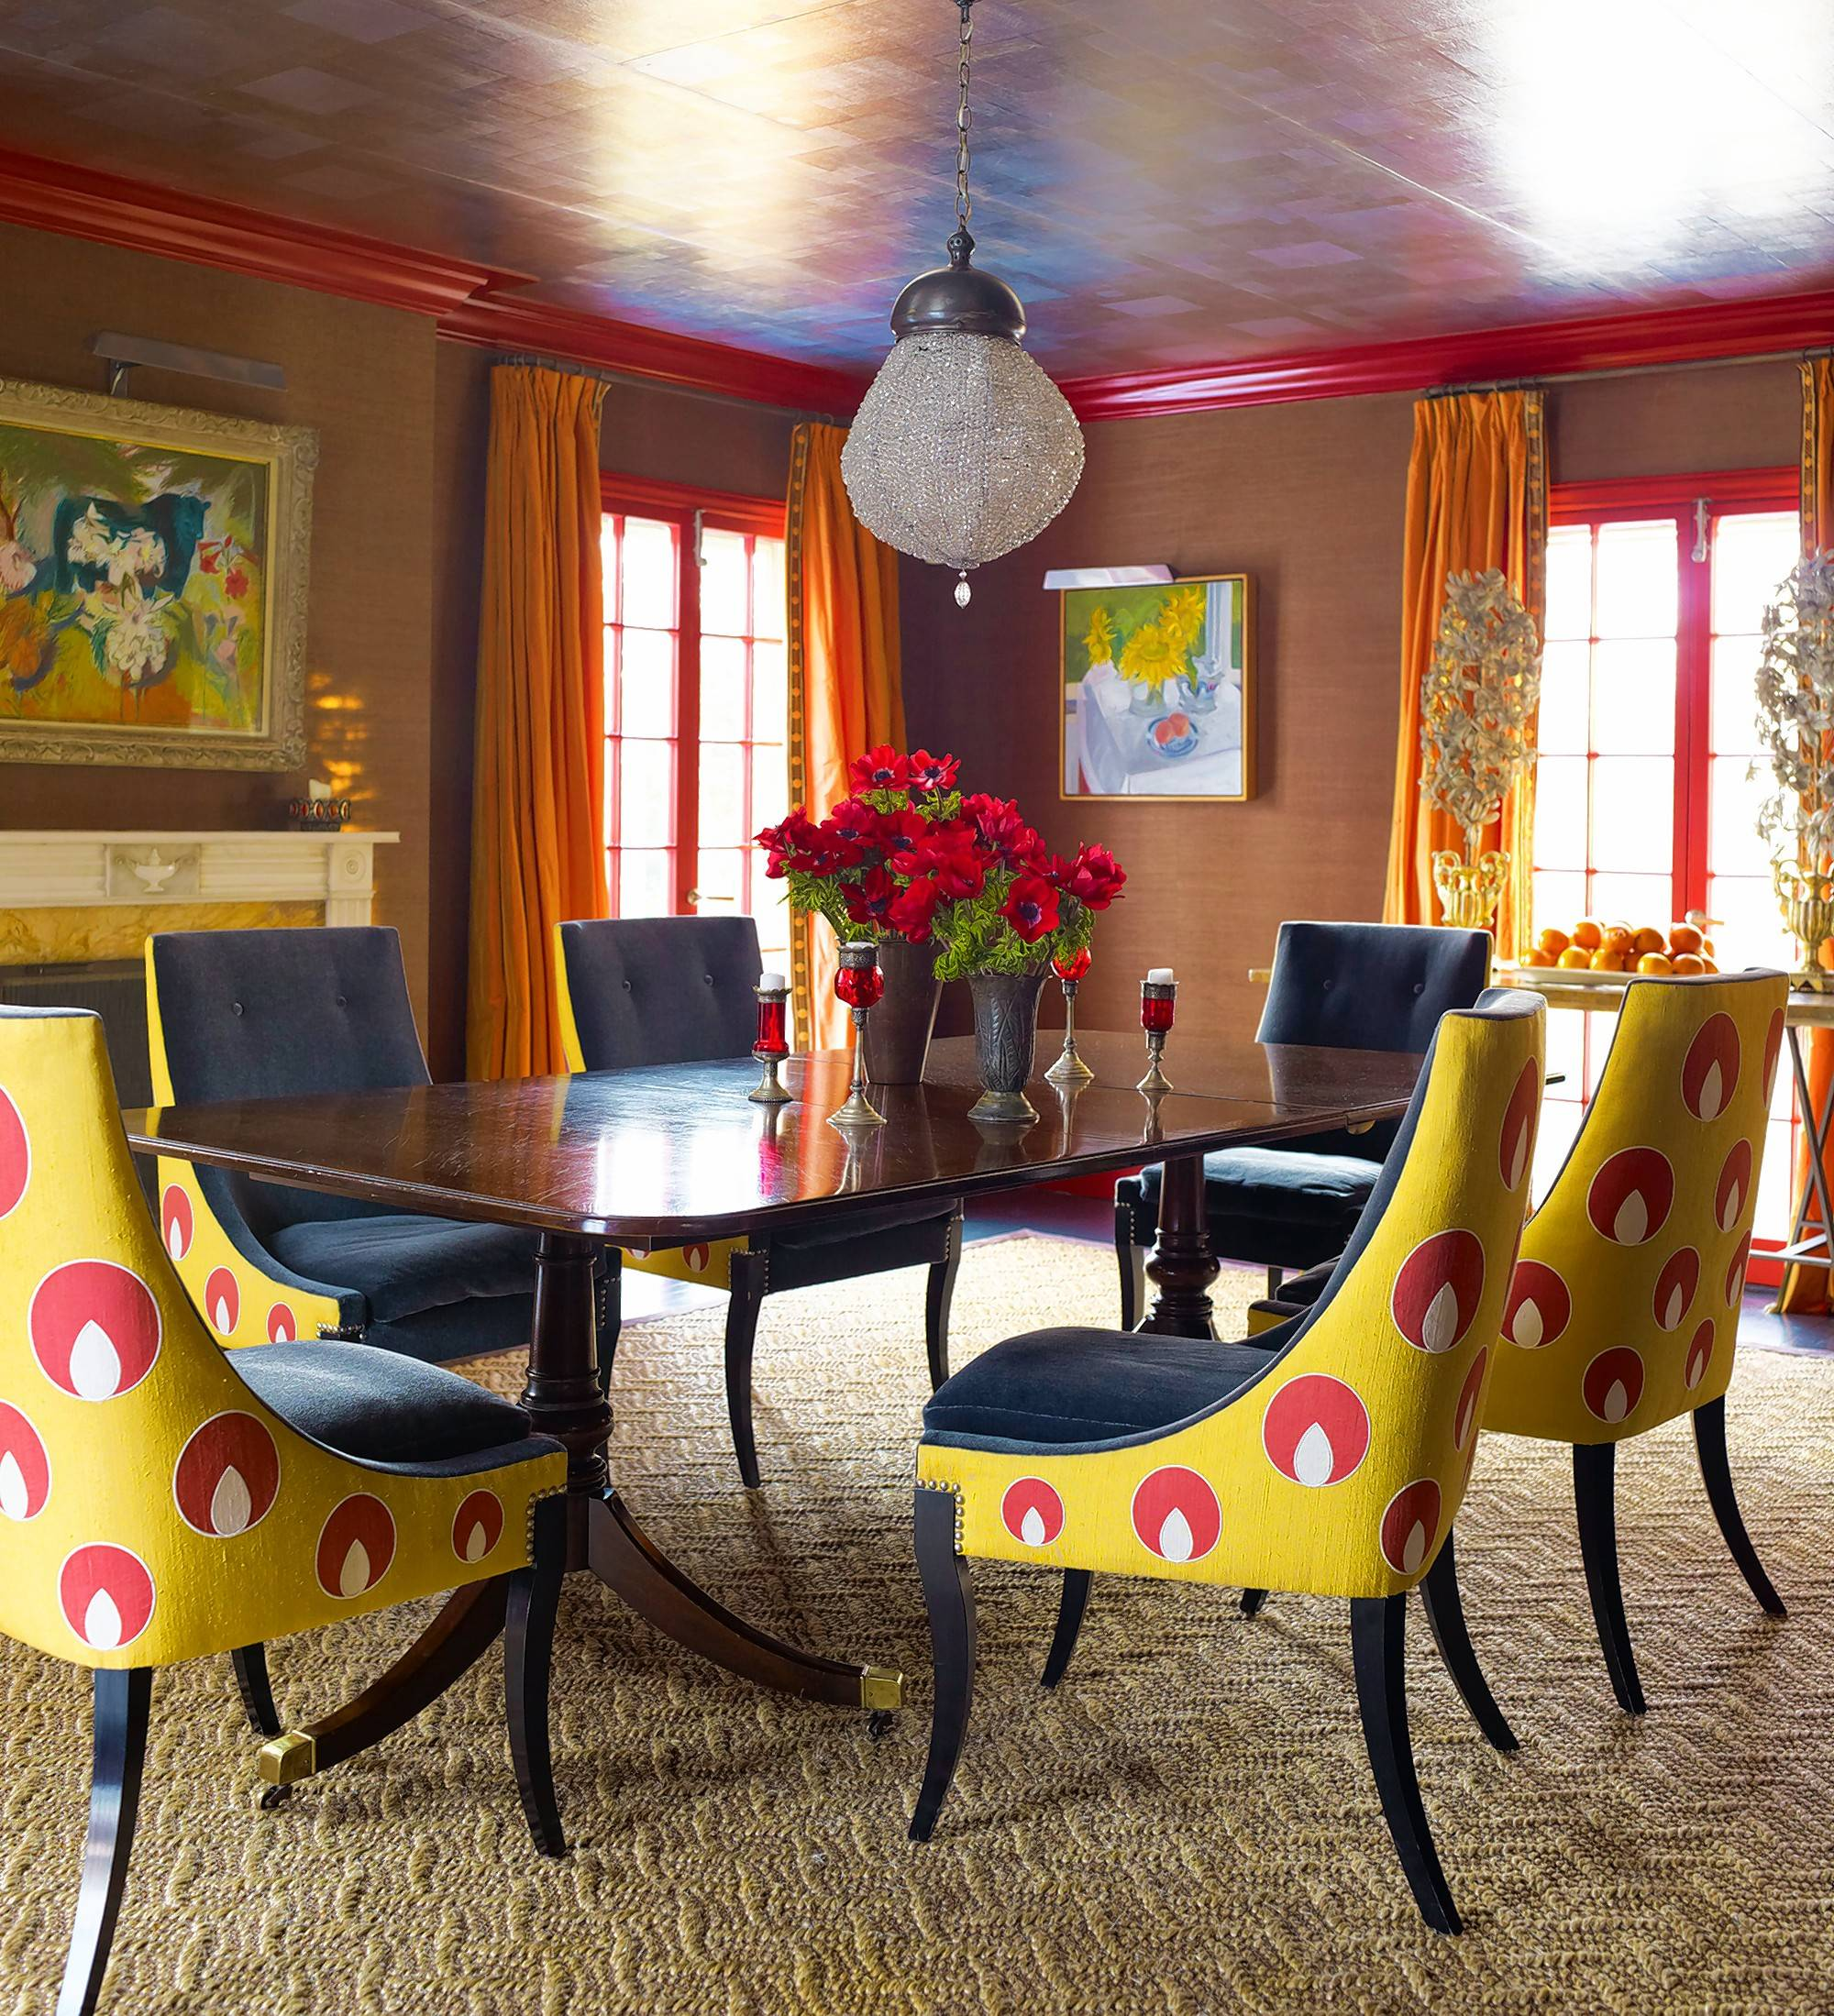 Katie Ridder and Peter Pennoyer's dramatic dining room at their house in Westchester, New York.